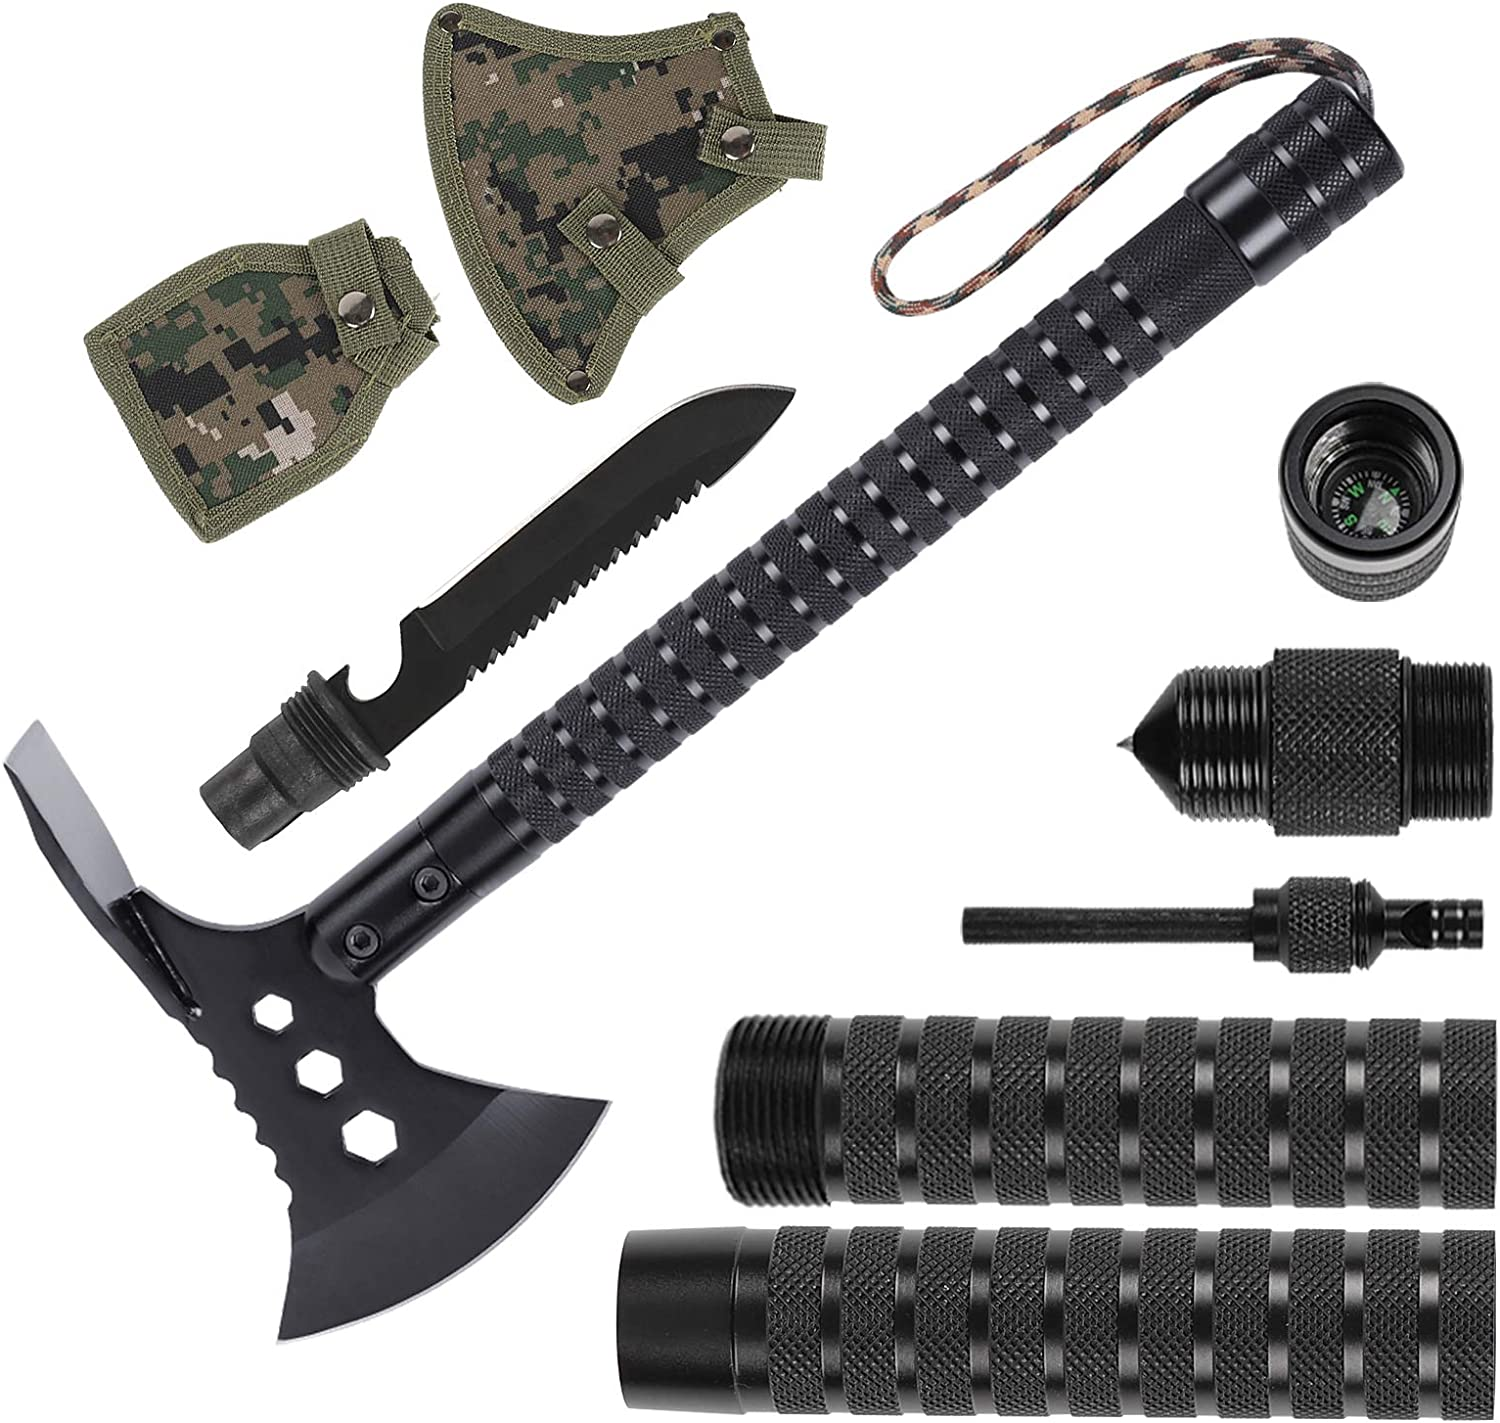 Amazon Com Liantral Portable Stainless Survival Axe Backpacking Folding Camping Axe Multitool Hatchet Shovel With Sheath Survival Gear Kit For Hunting Hiking And Emergency Sports Outdoors